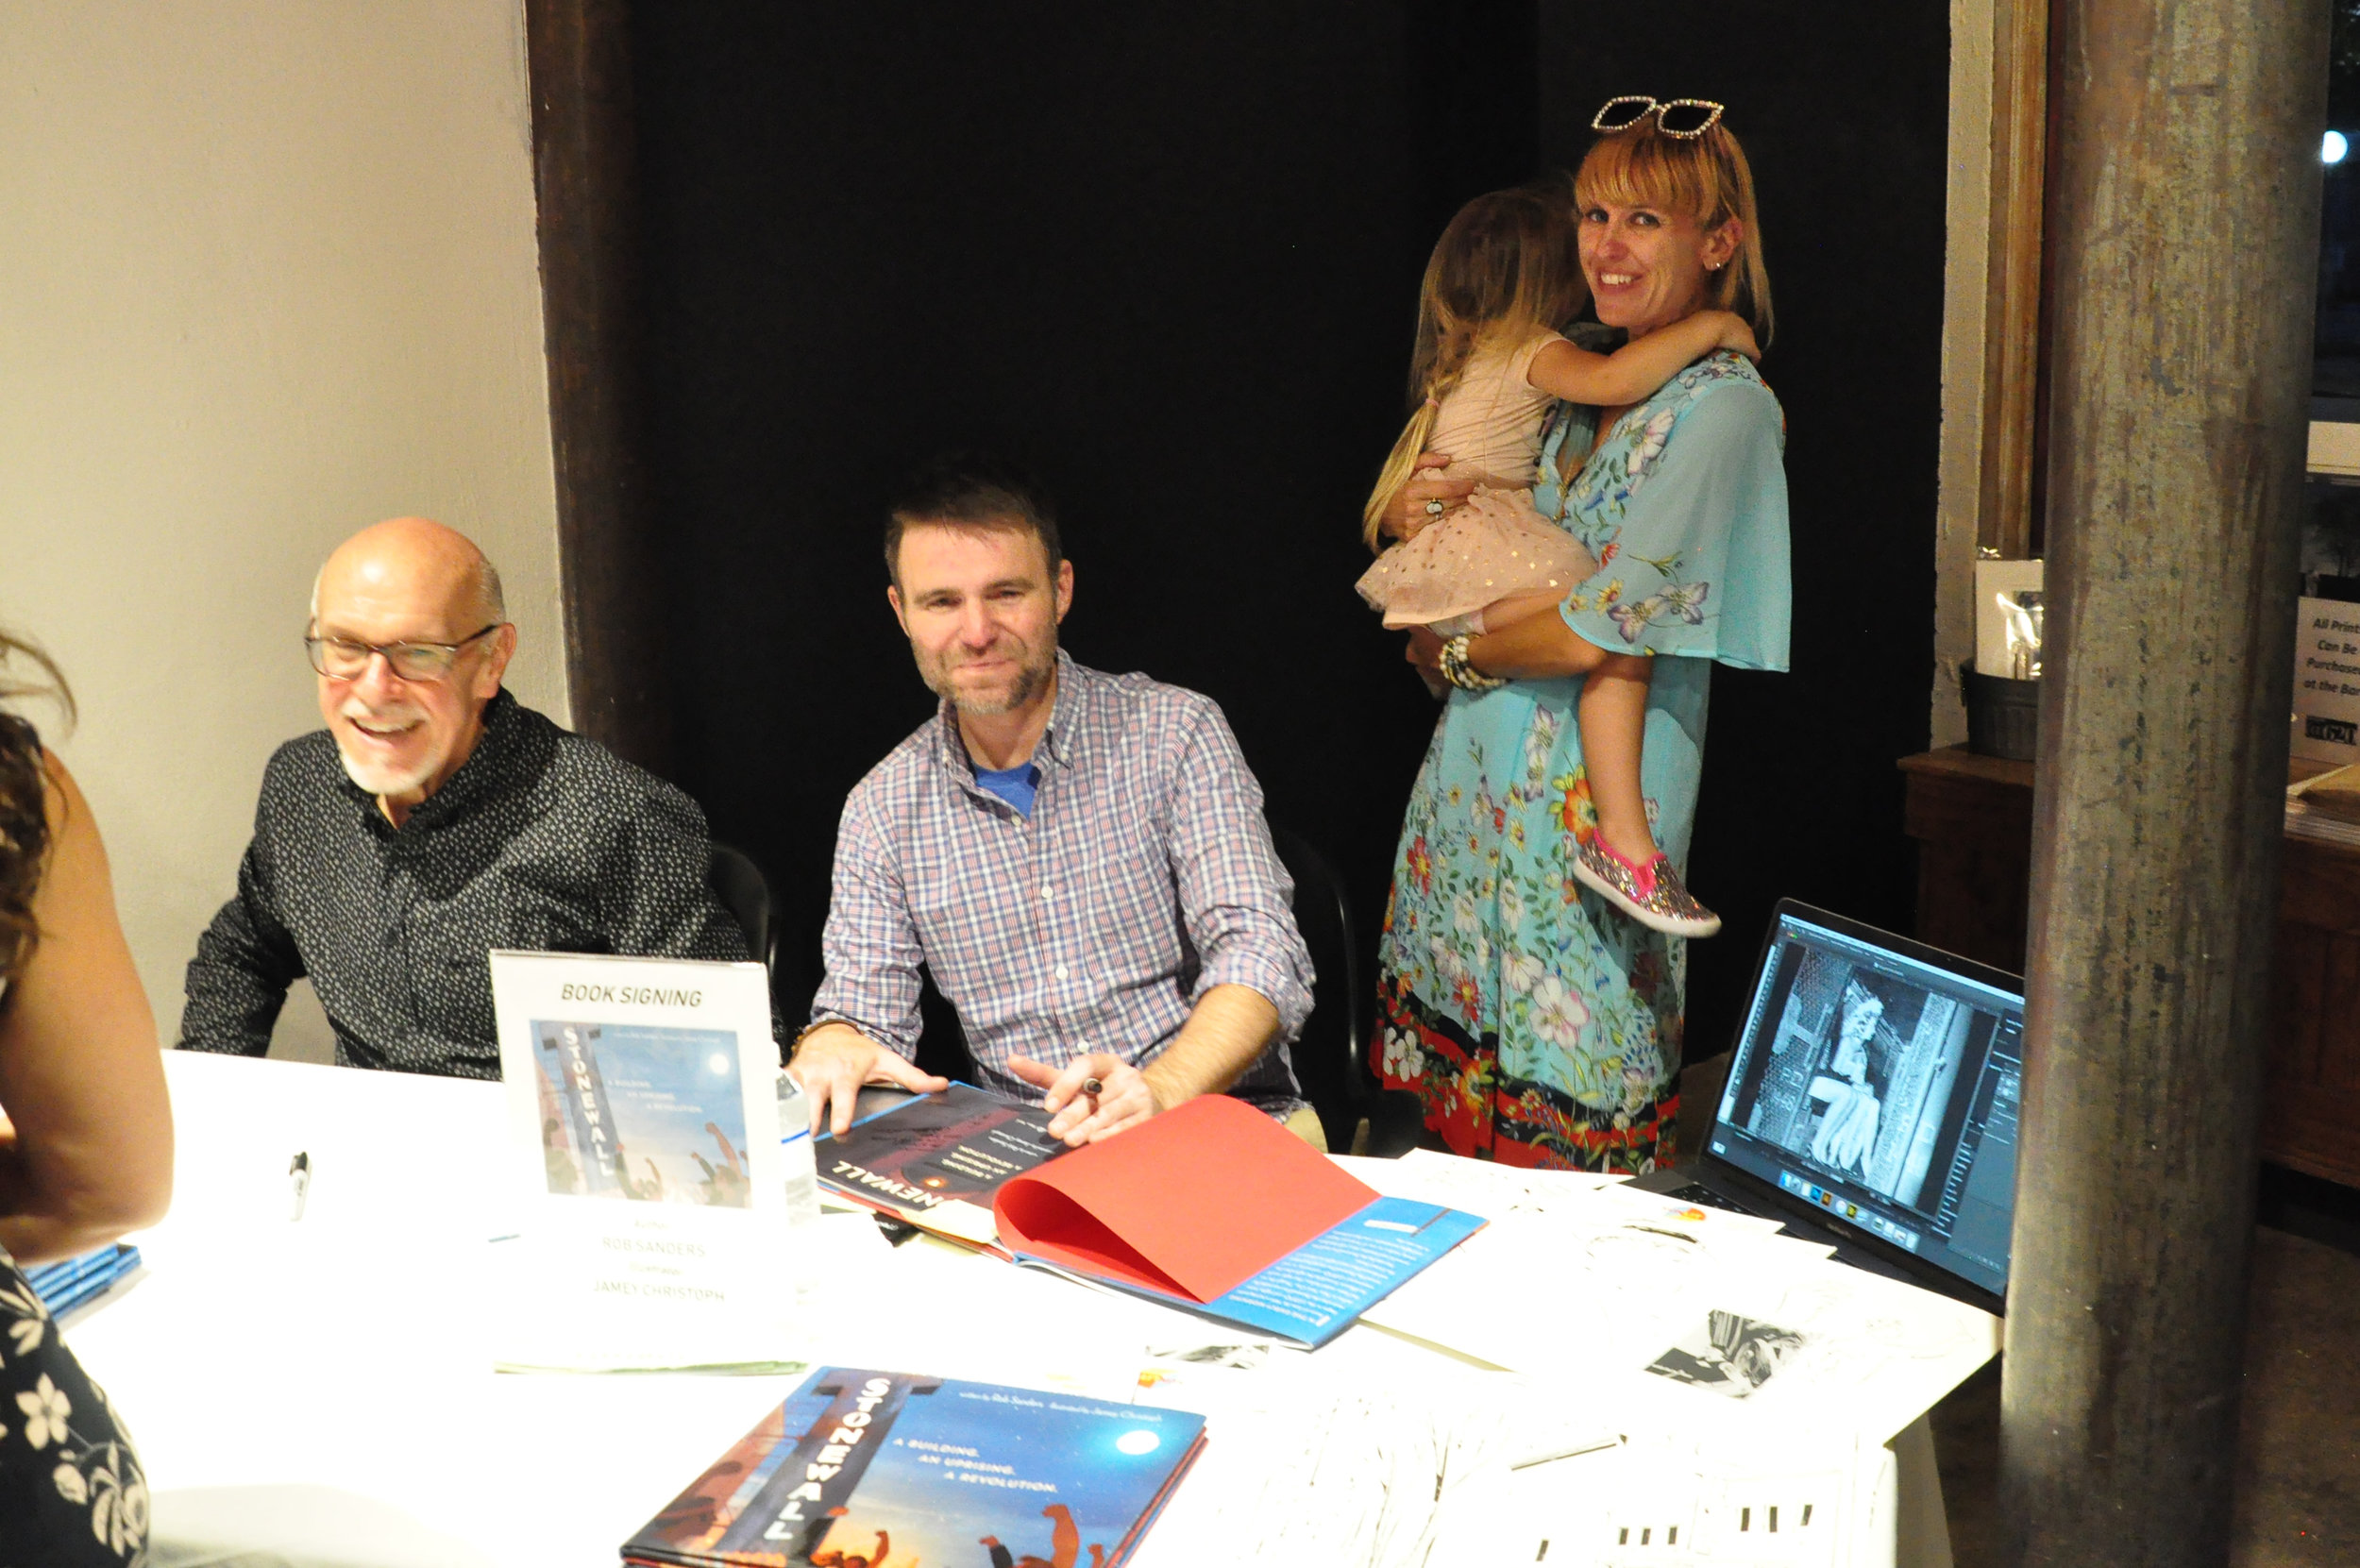 Singing books with Rob Sanders and my sister, Sarah, and niece, Helena! Photo: Laura Christoph